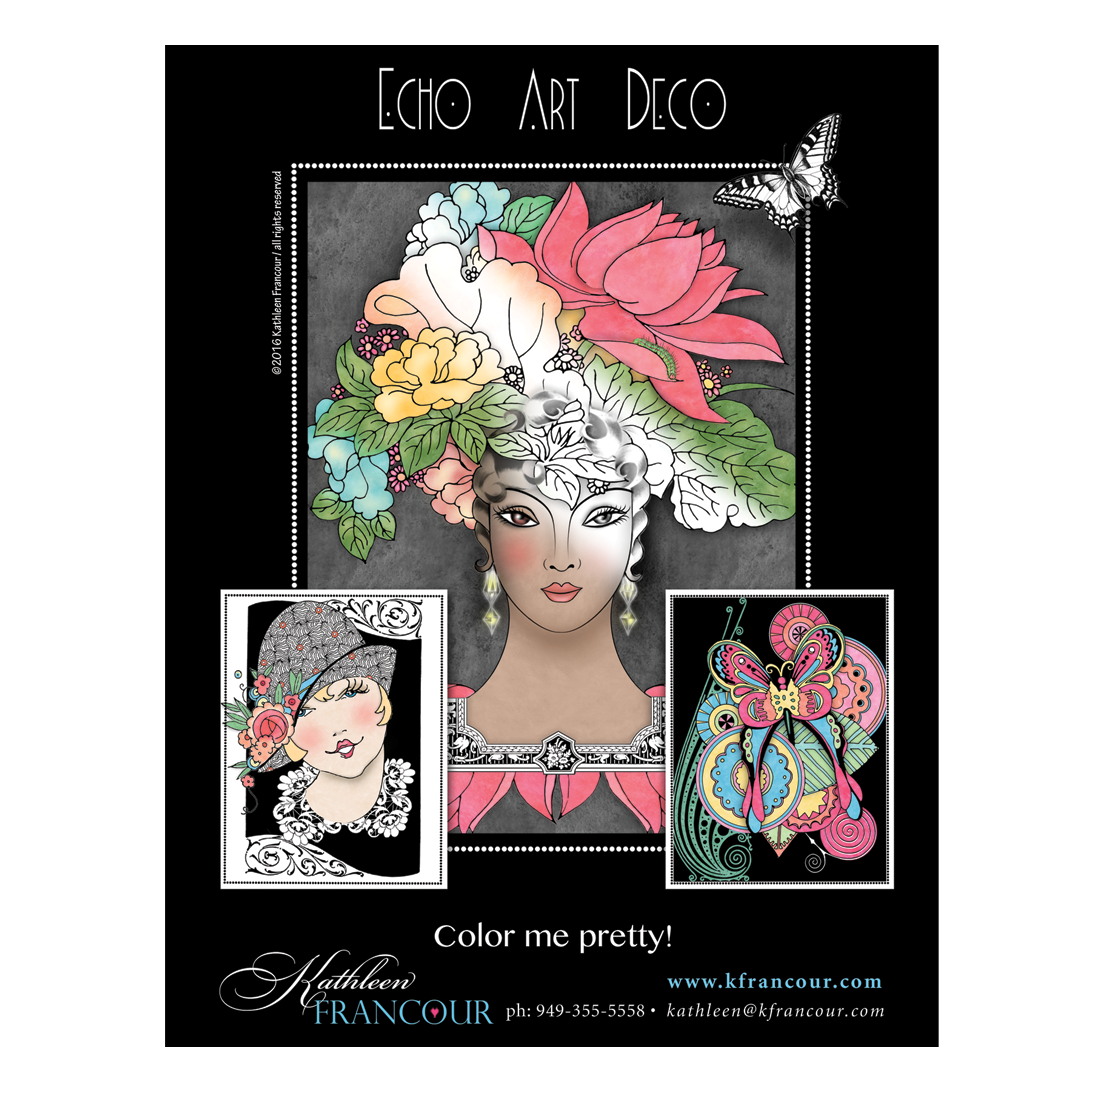 1-ECHO ART DECO-COLOR ME PRETTY GALLERY PG.png